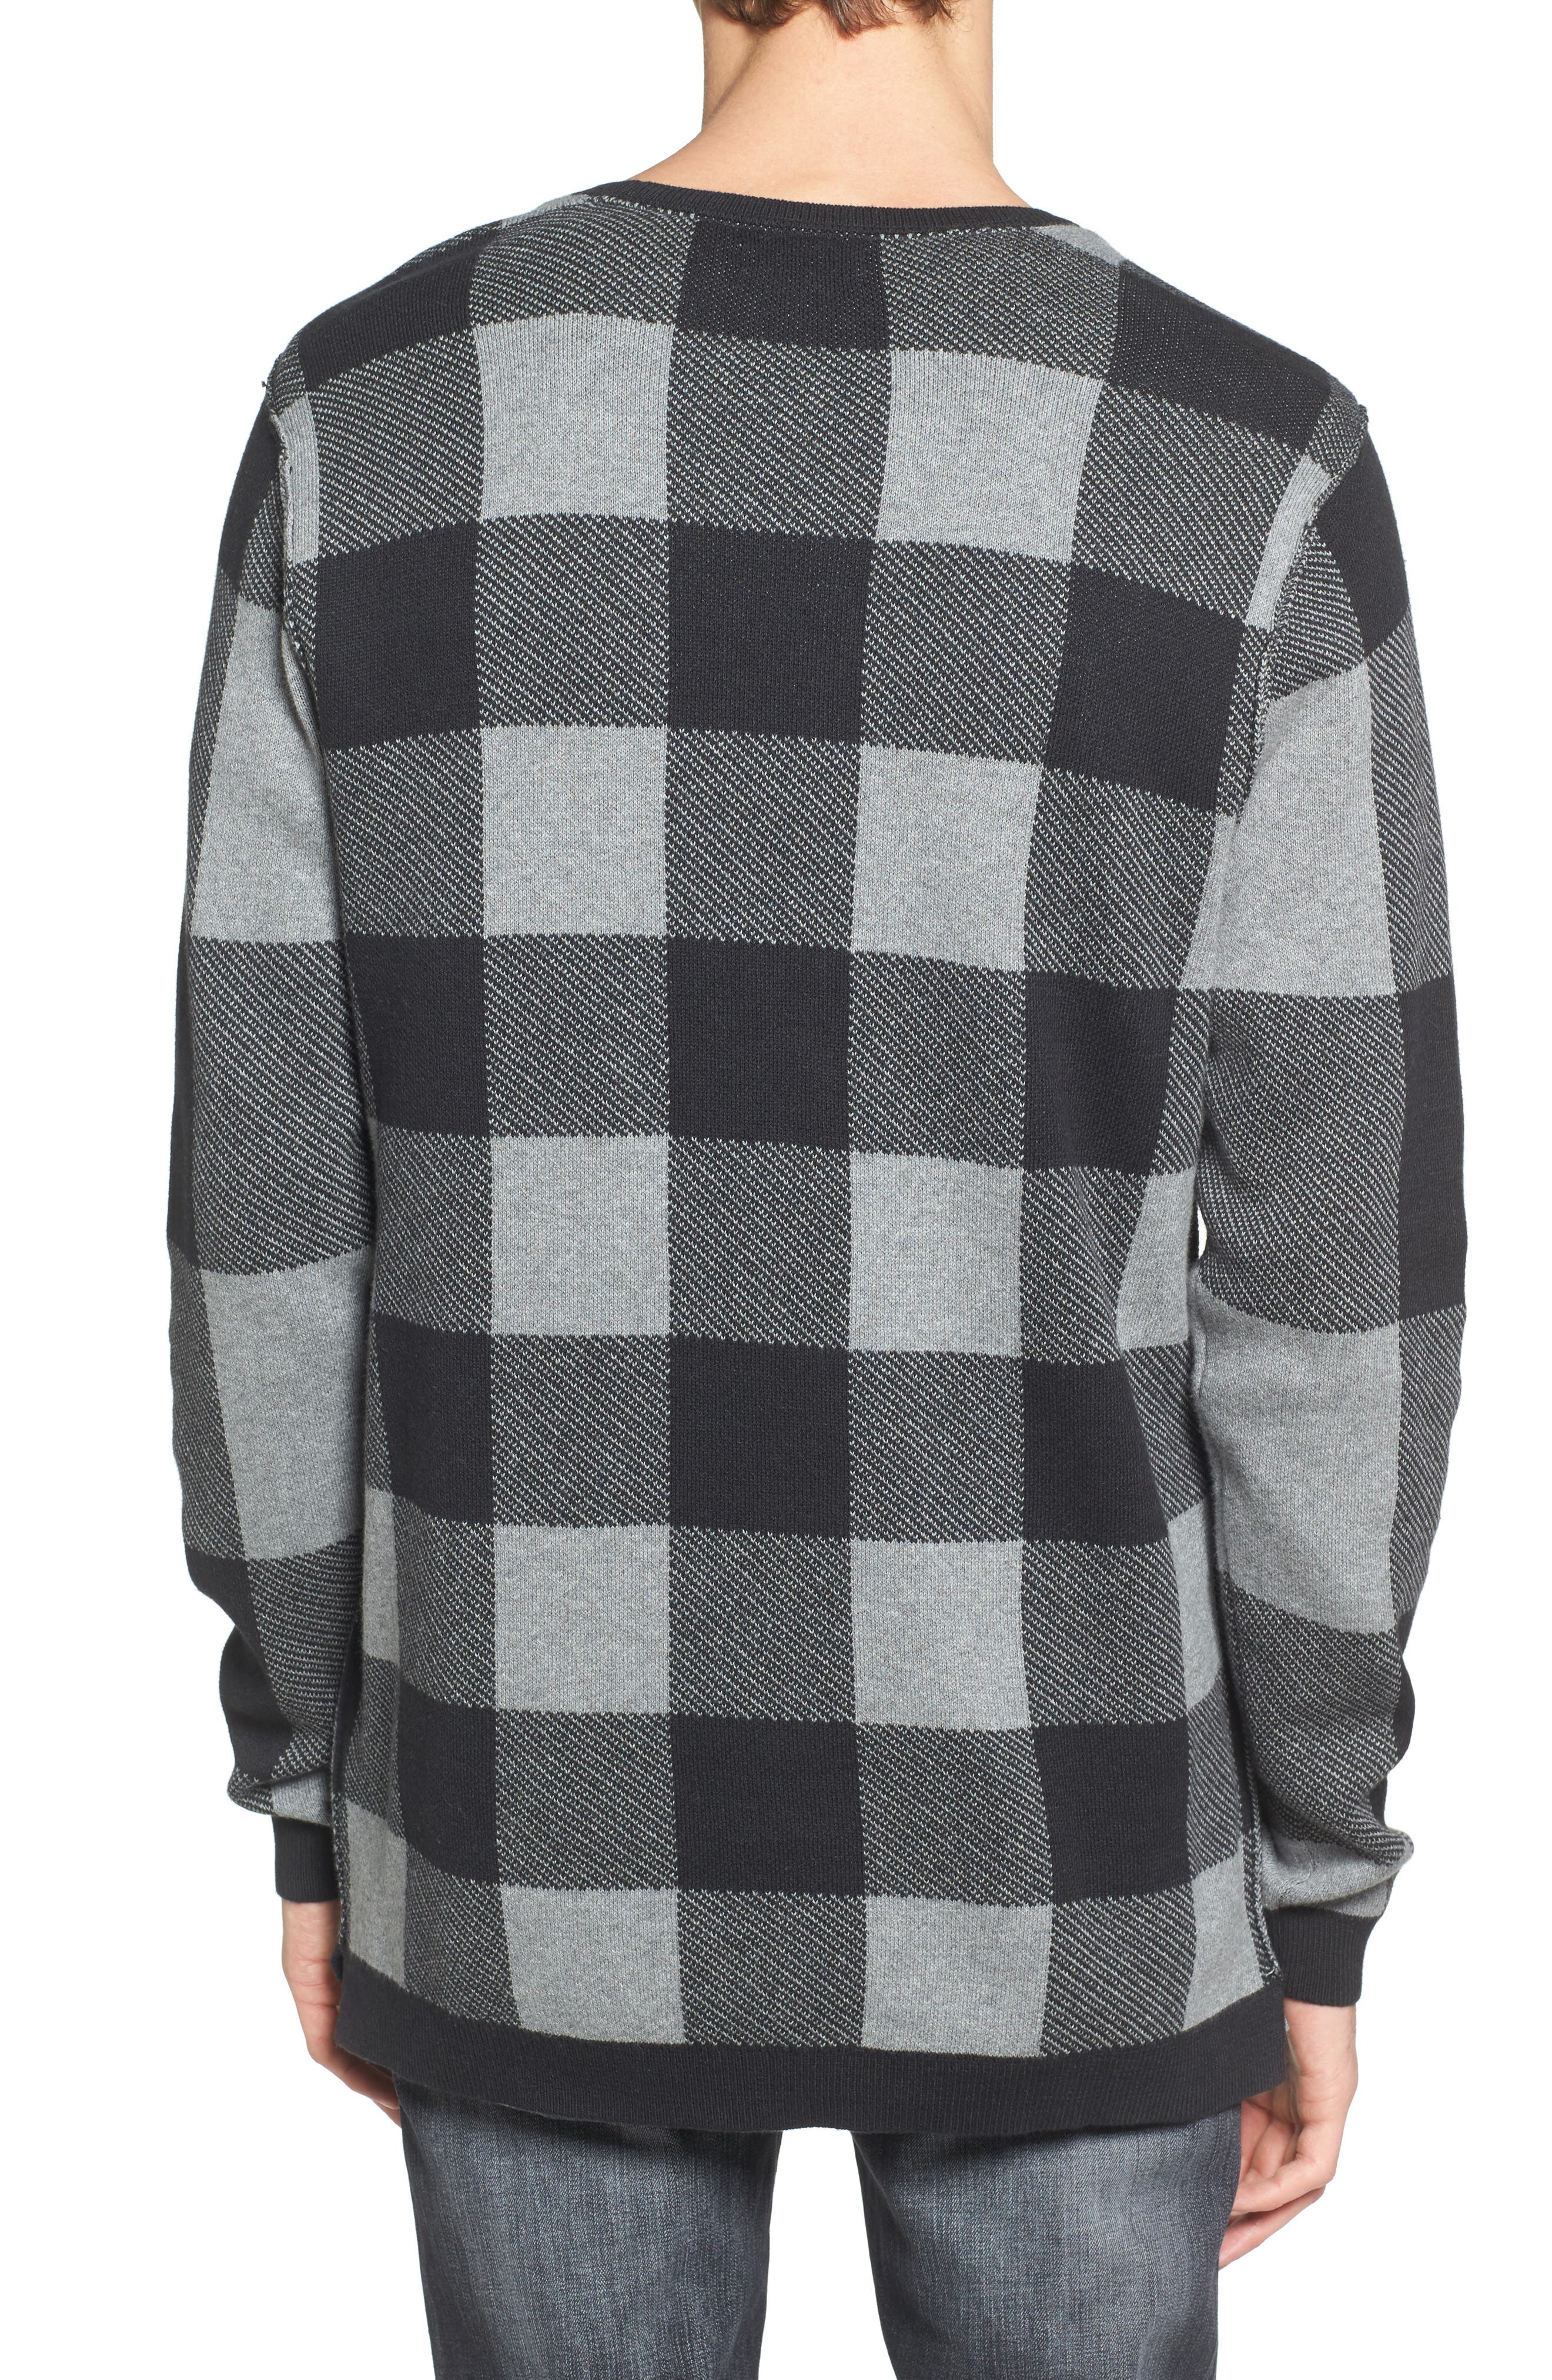 Oversize Buffalo Check Sweater,                             Alternate thumbnail 2, color,                             030